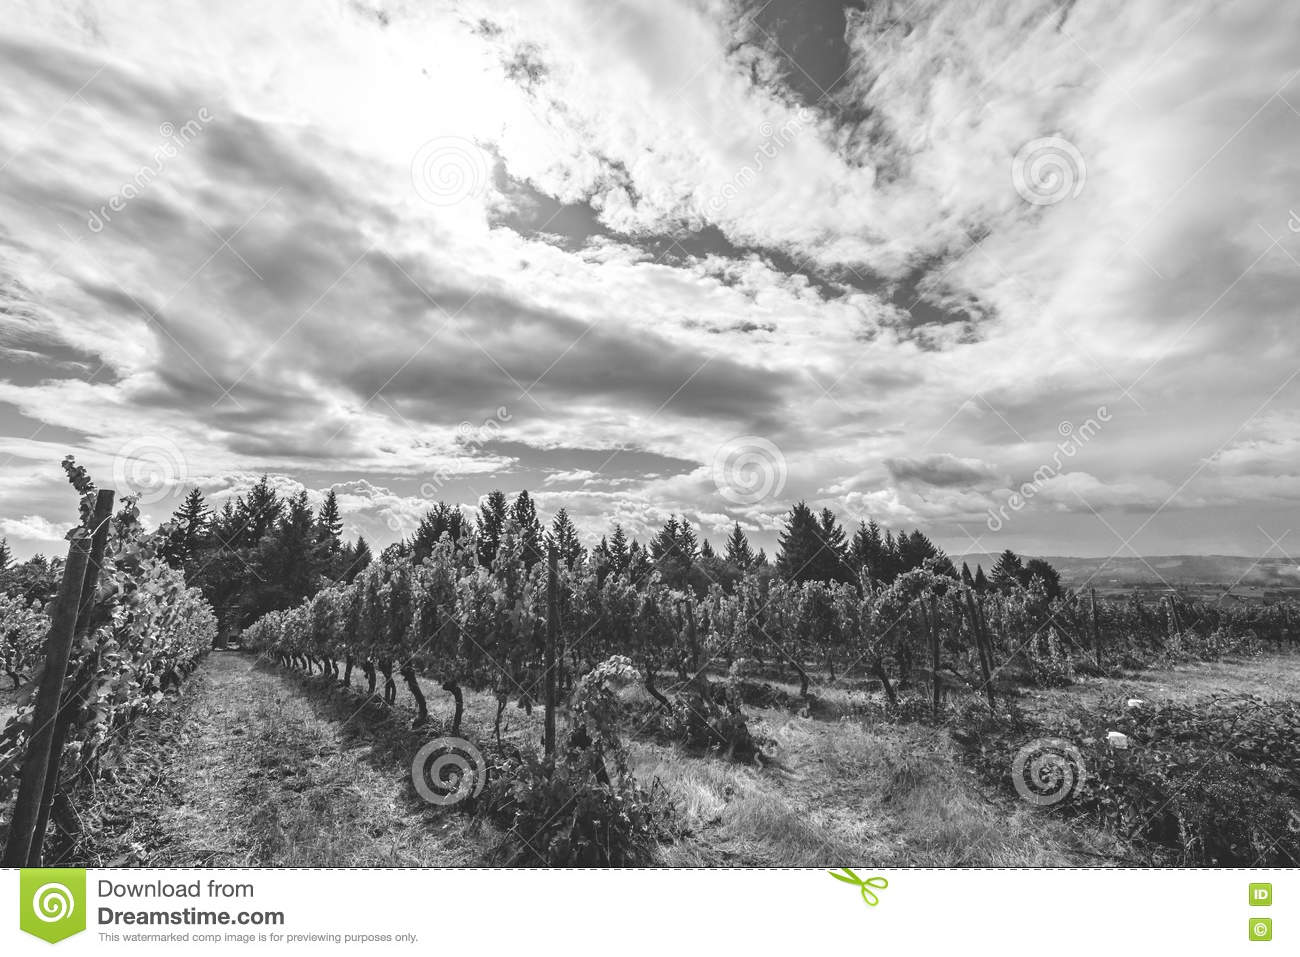 Grapes growing in a vineyard on a partly cloudy summer day black and white photo